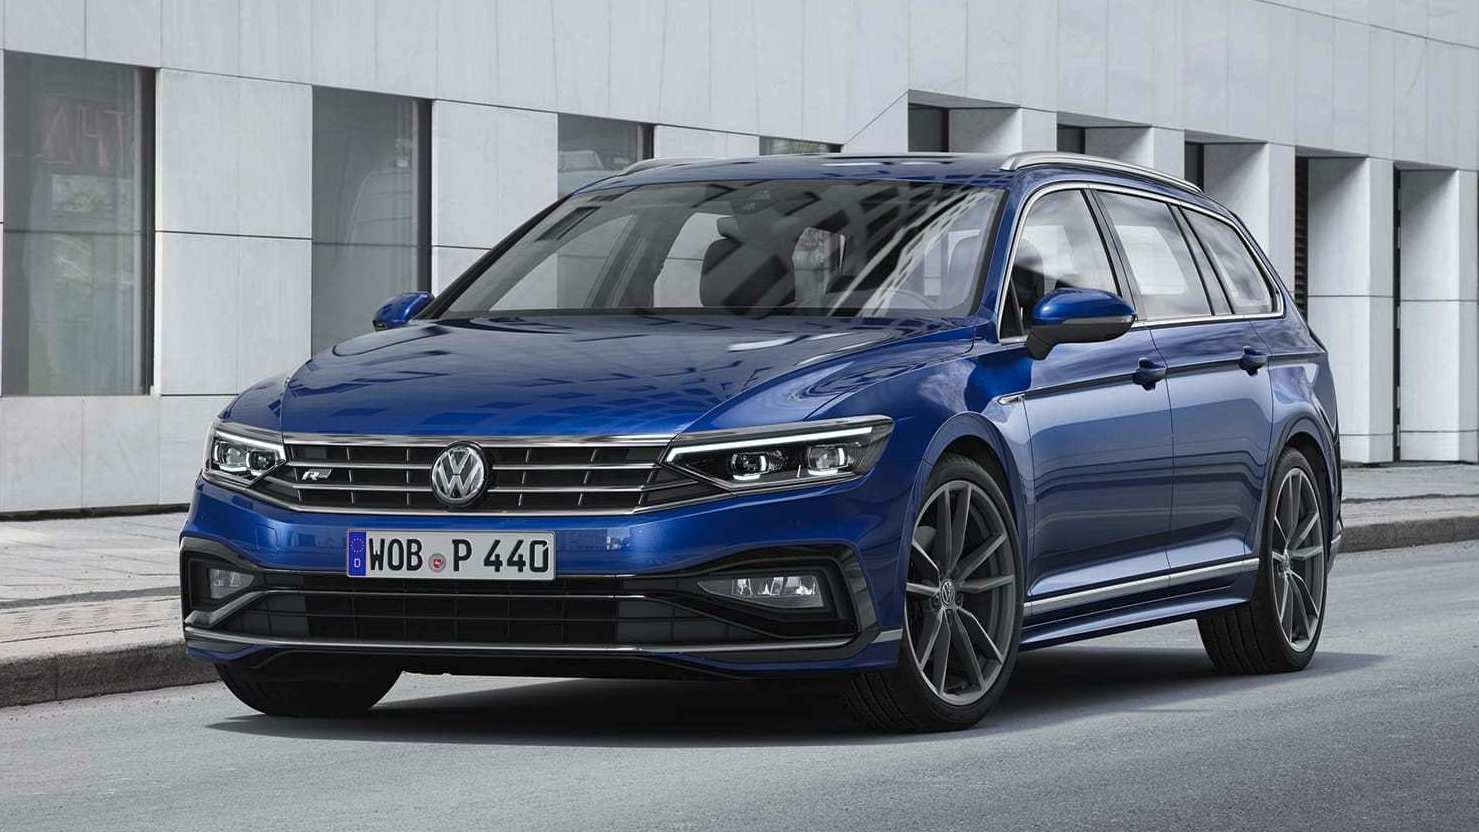 58 New 2020 Vw Passat Alltrack Wallpaper